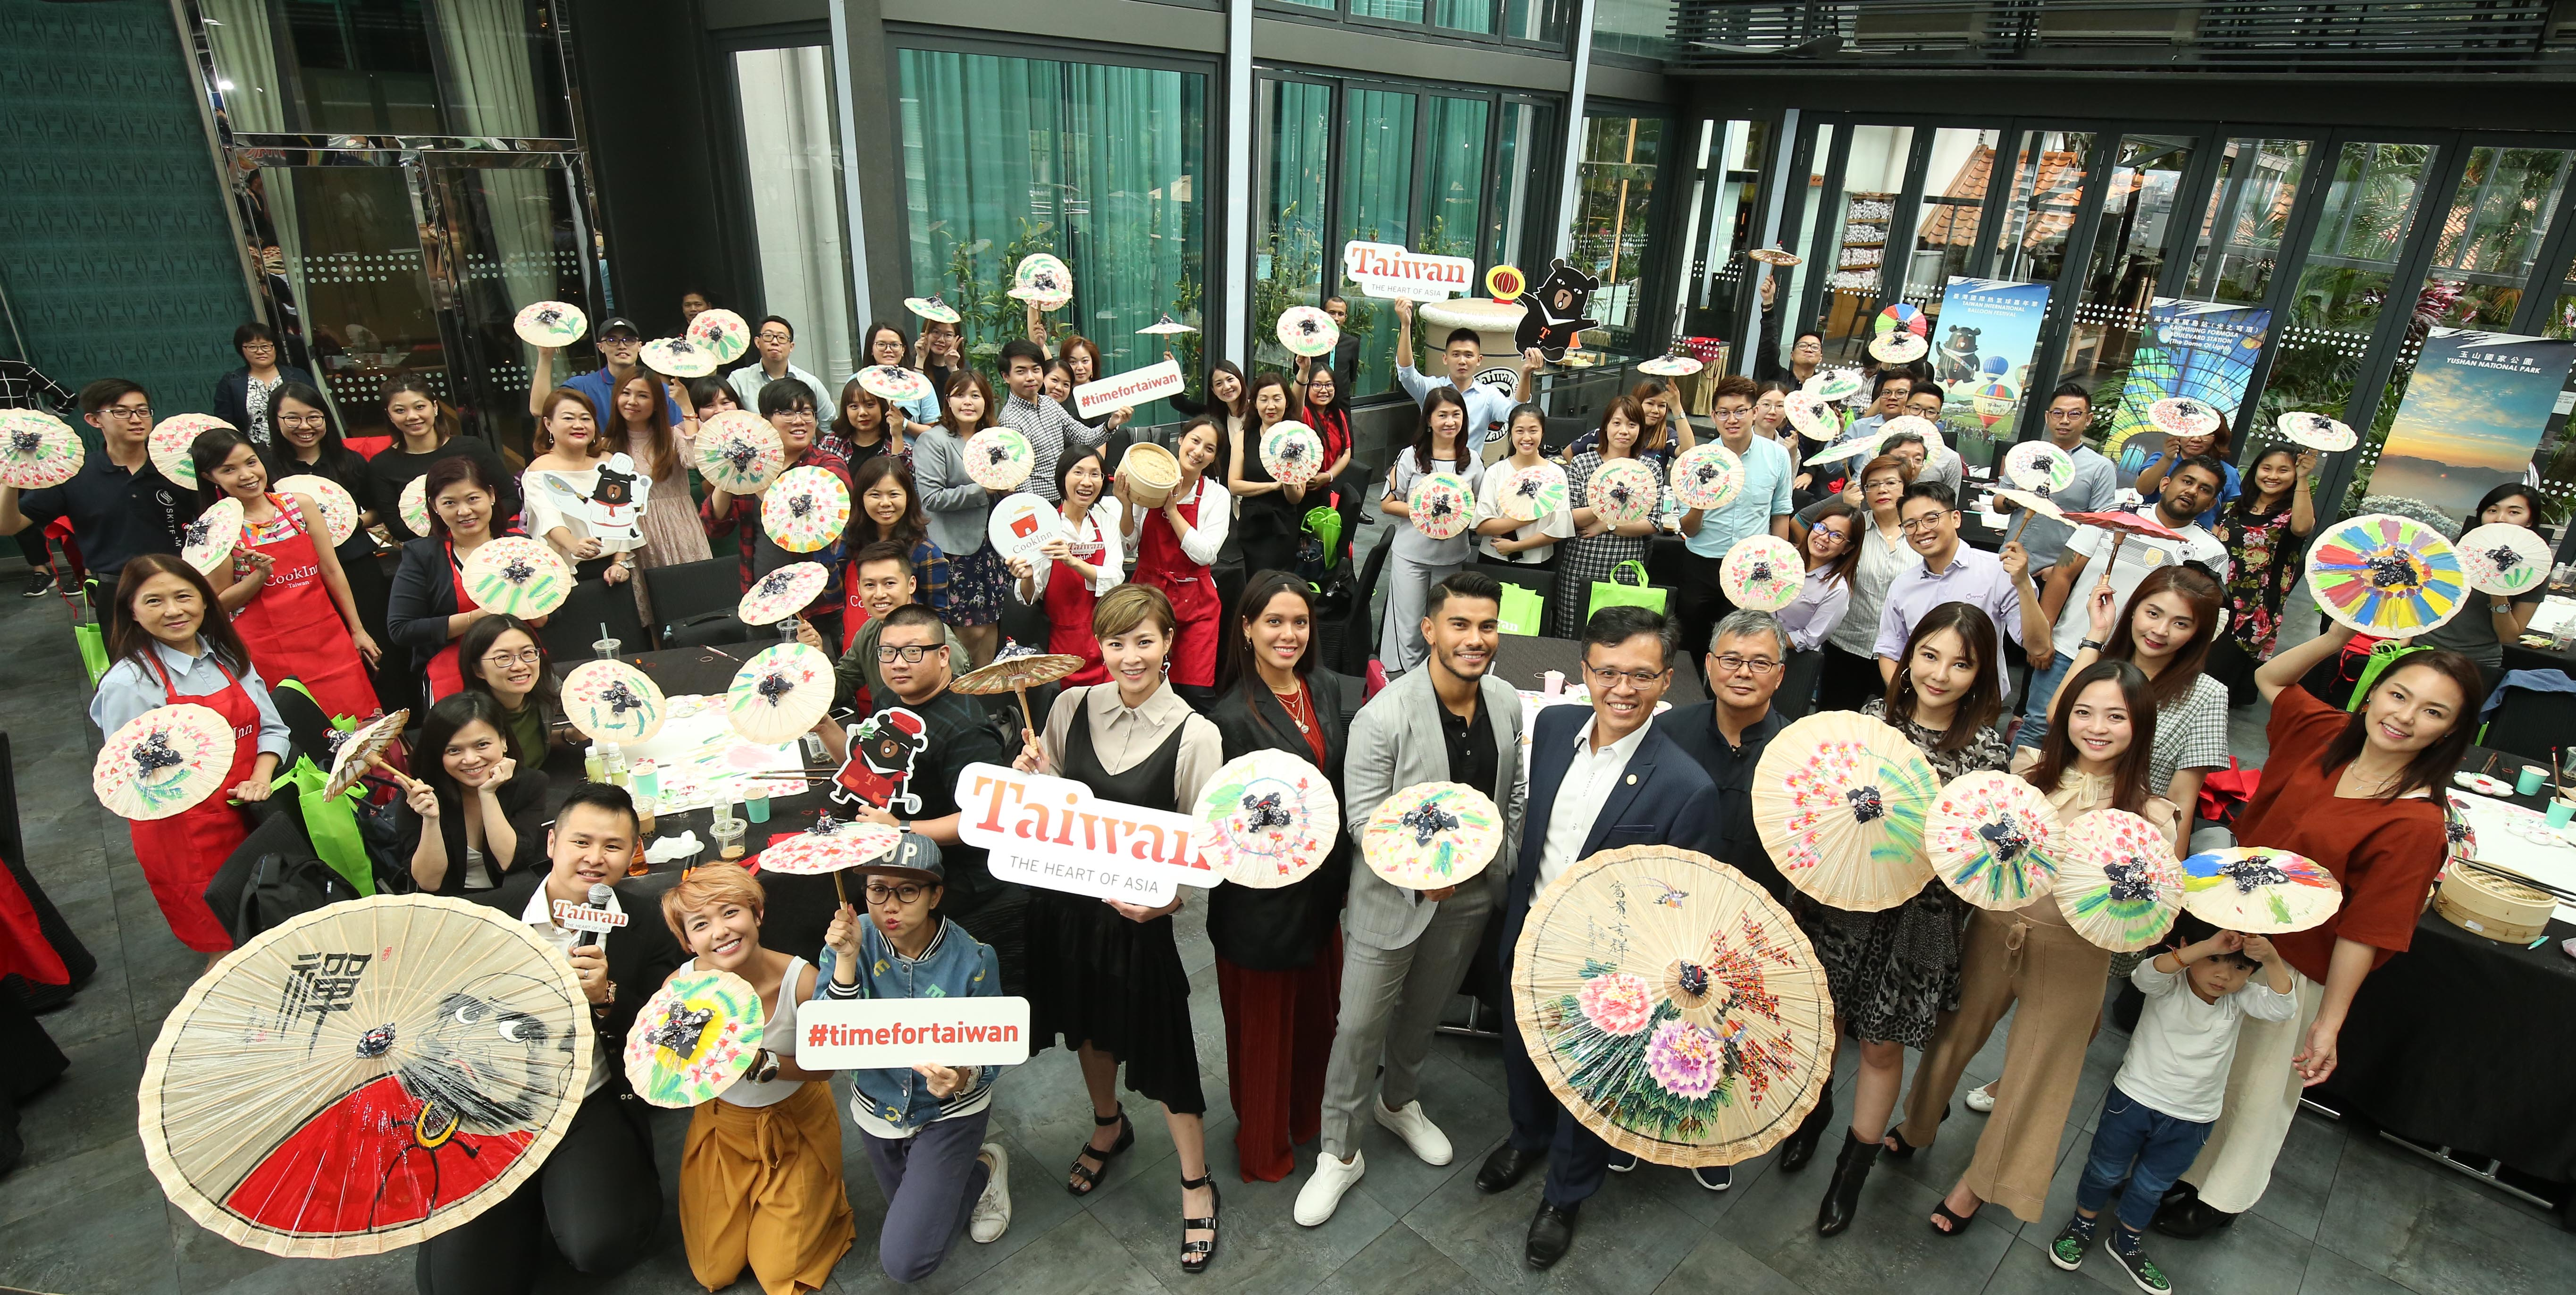 Guests proudly presented their DIY creative Taiwanese dumpling and oil-paper umbrella artwork.